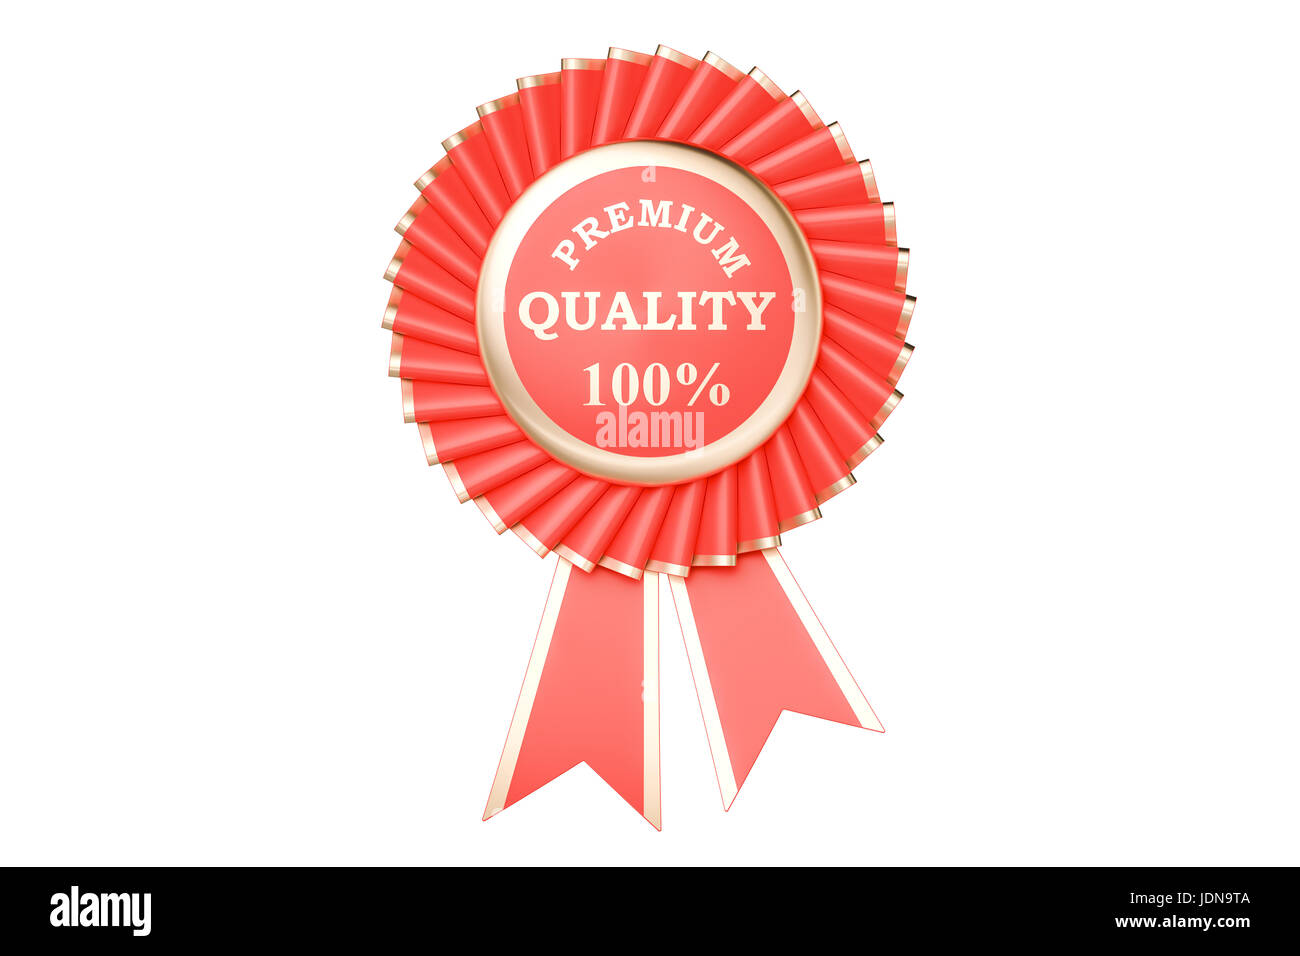 premium quality 100% award, prize, medal or badge with ribbons. 3D rendering isolated on white background - Stock Image